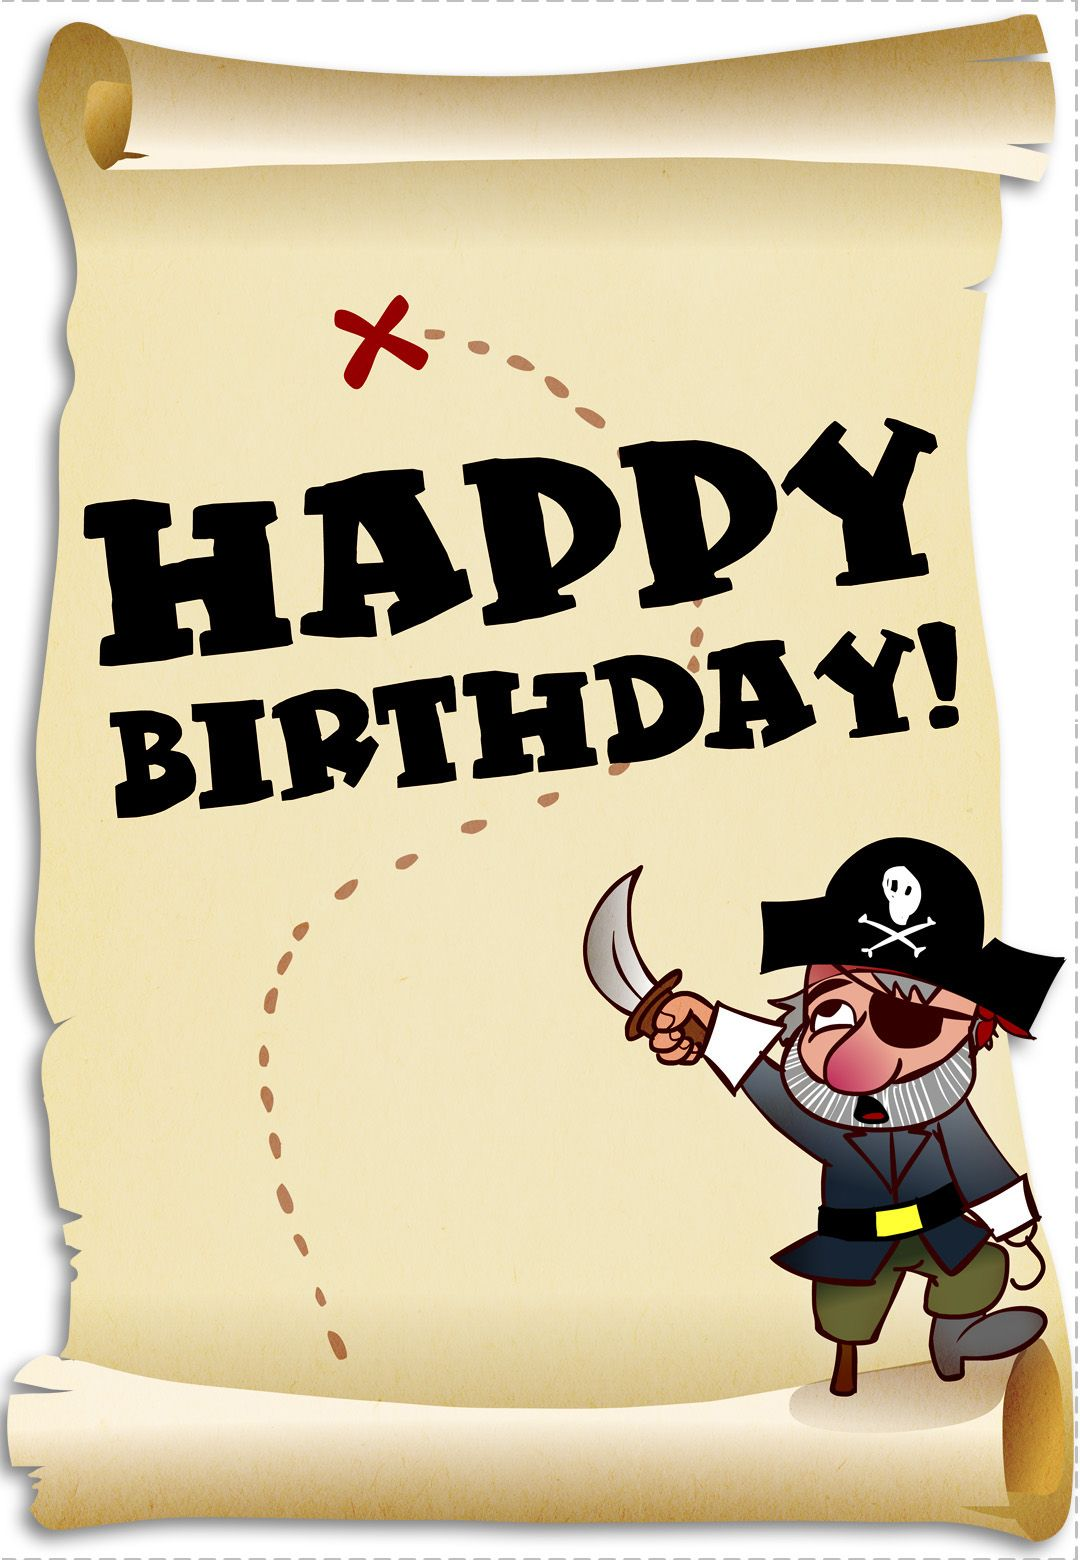 Pirate clipart happy birthday. Free printable card birthdayparty